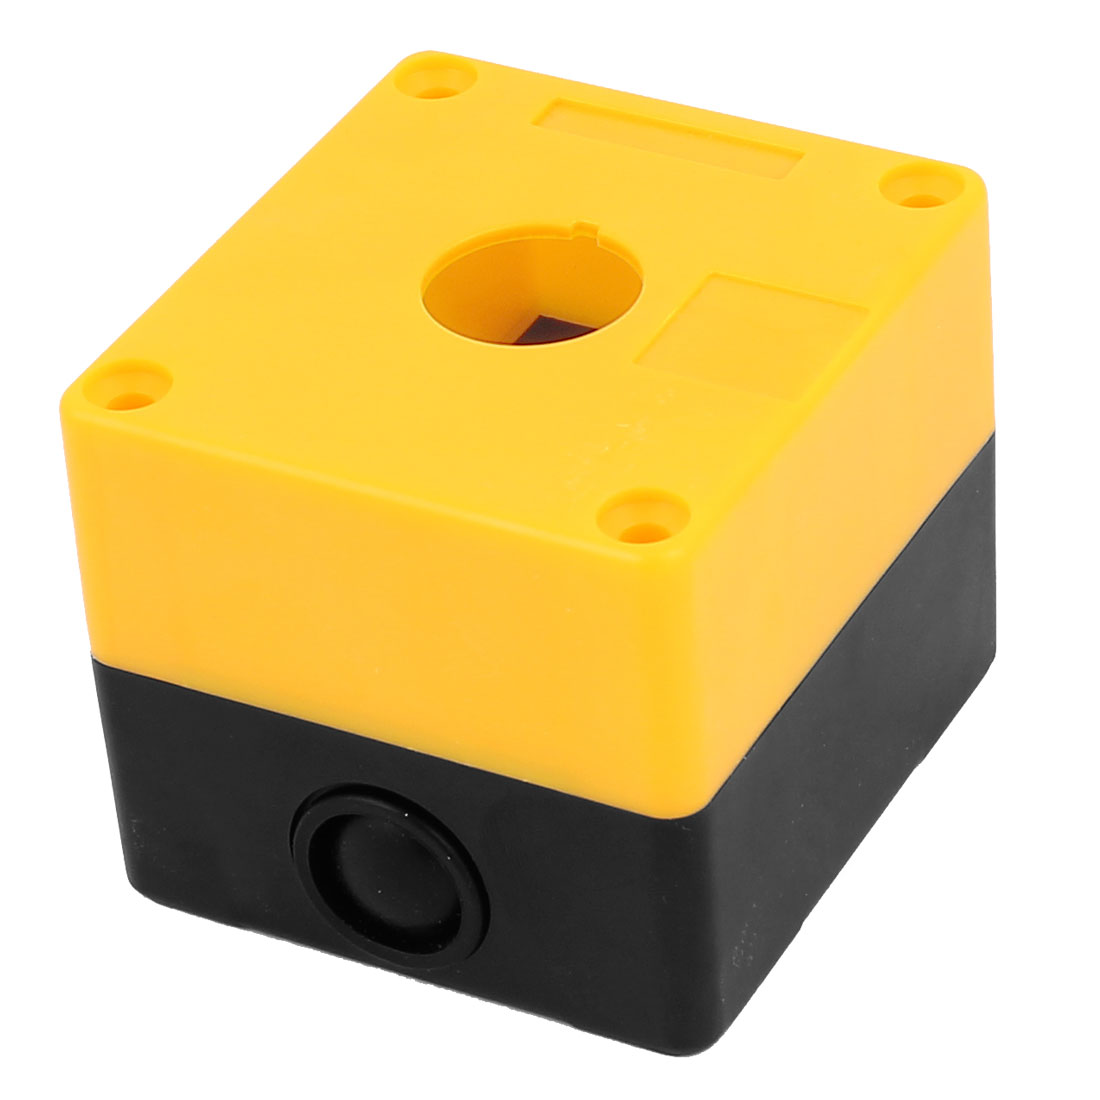 Plastic Yellow Black 1 Hole Push Button Control Station Switch Box